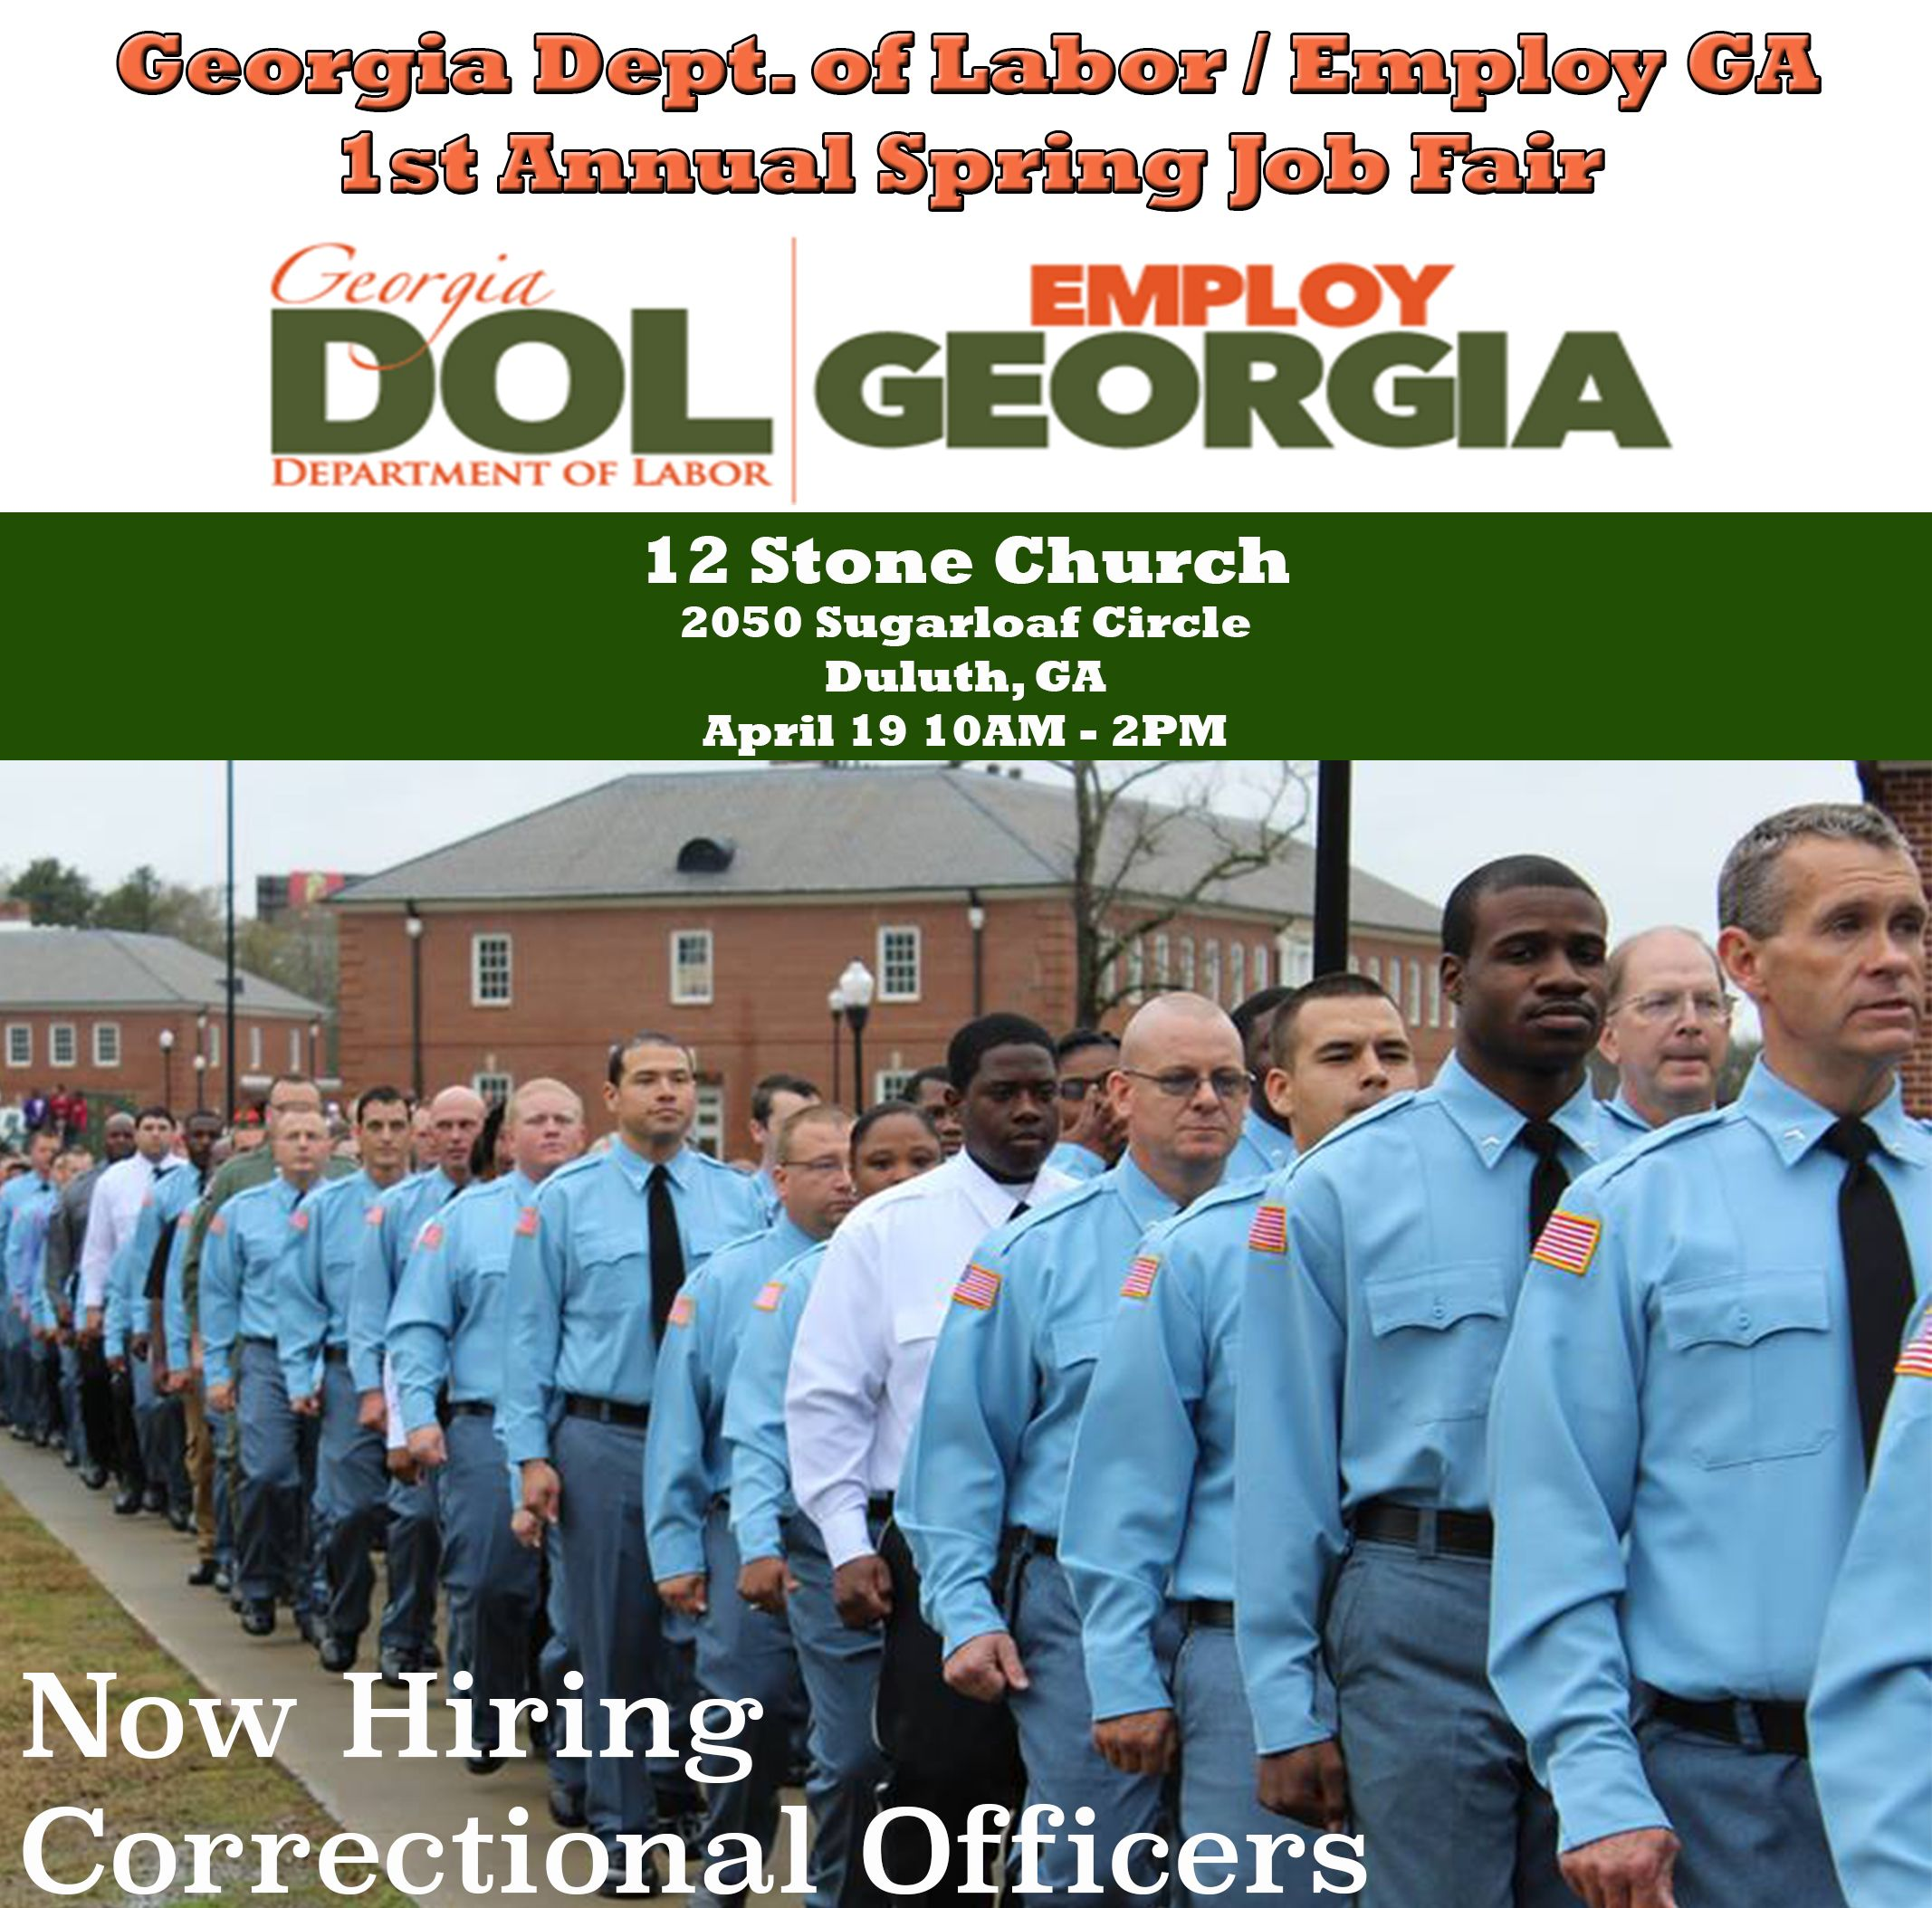 hiring correctional officers we will be at 12 stone church in duluth ga april 19 for georgia. Black Bedroom Furniture Sets. Home Design Ideas